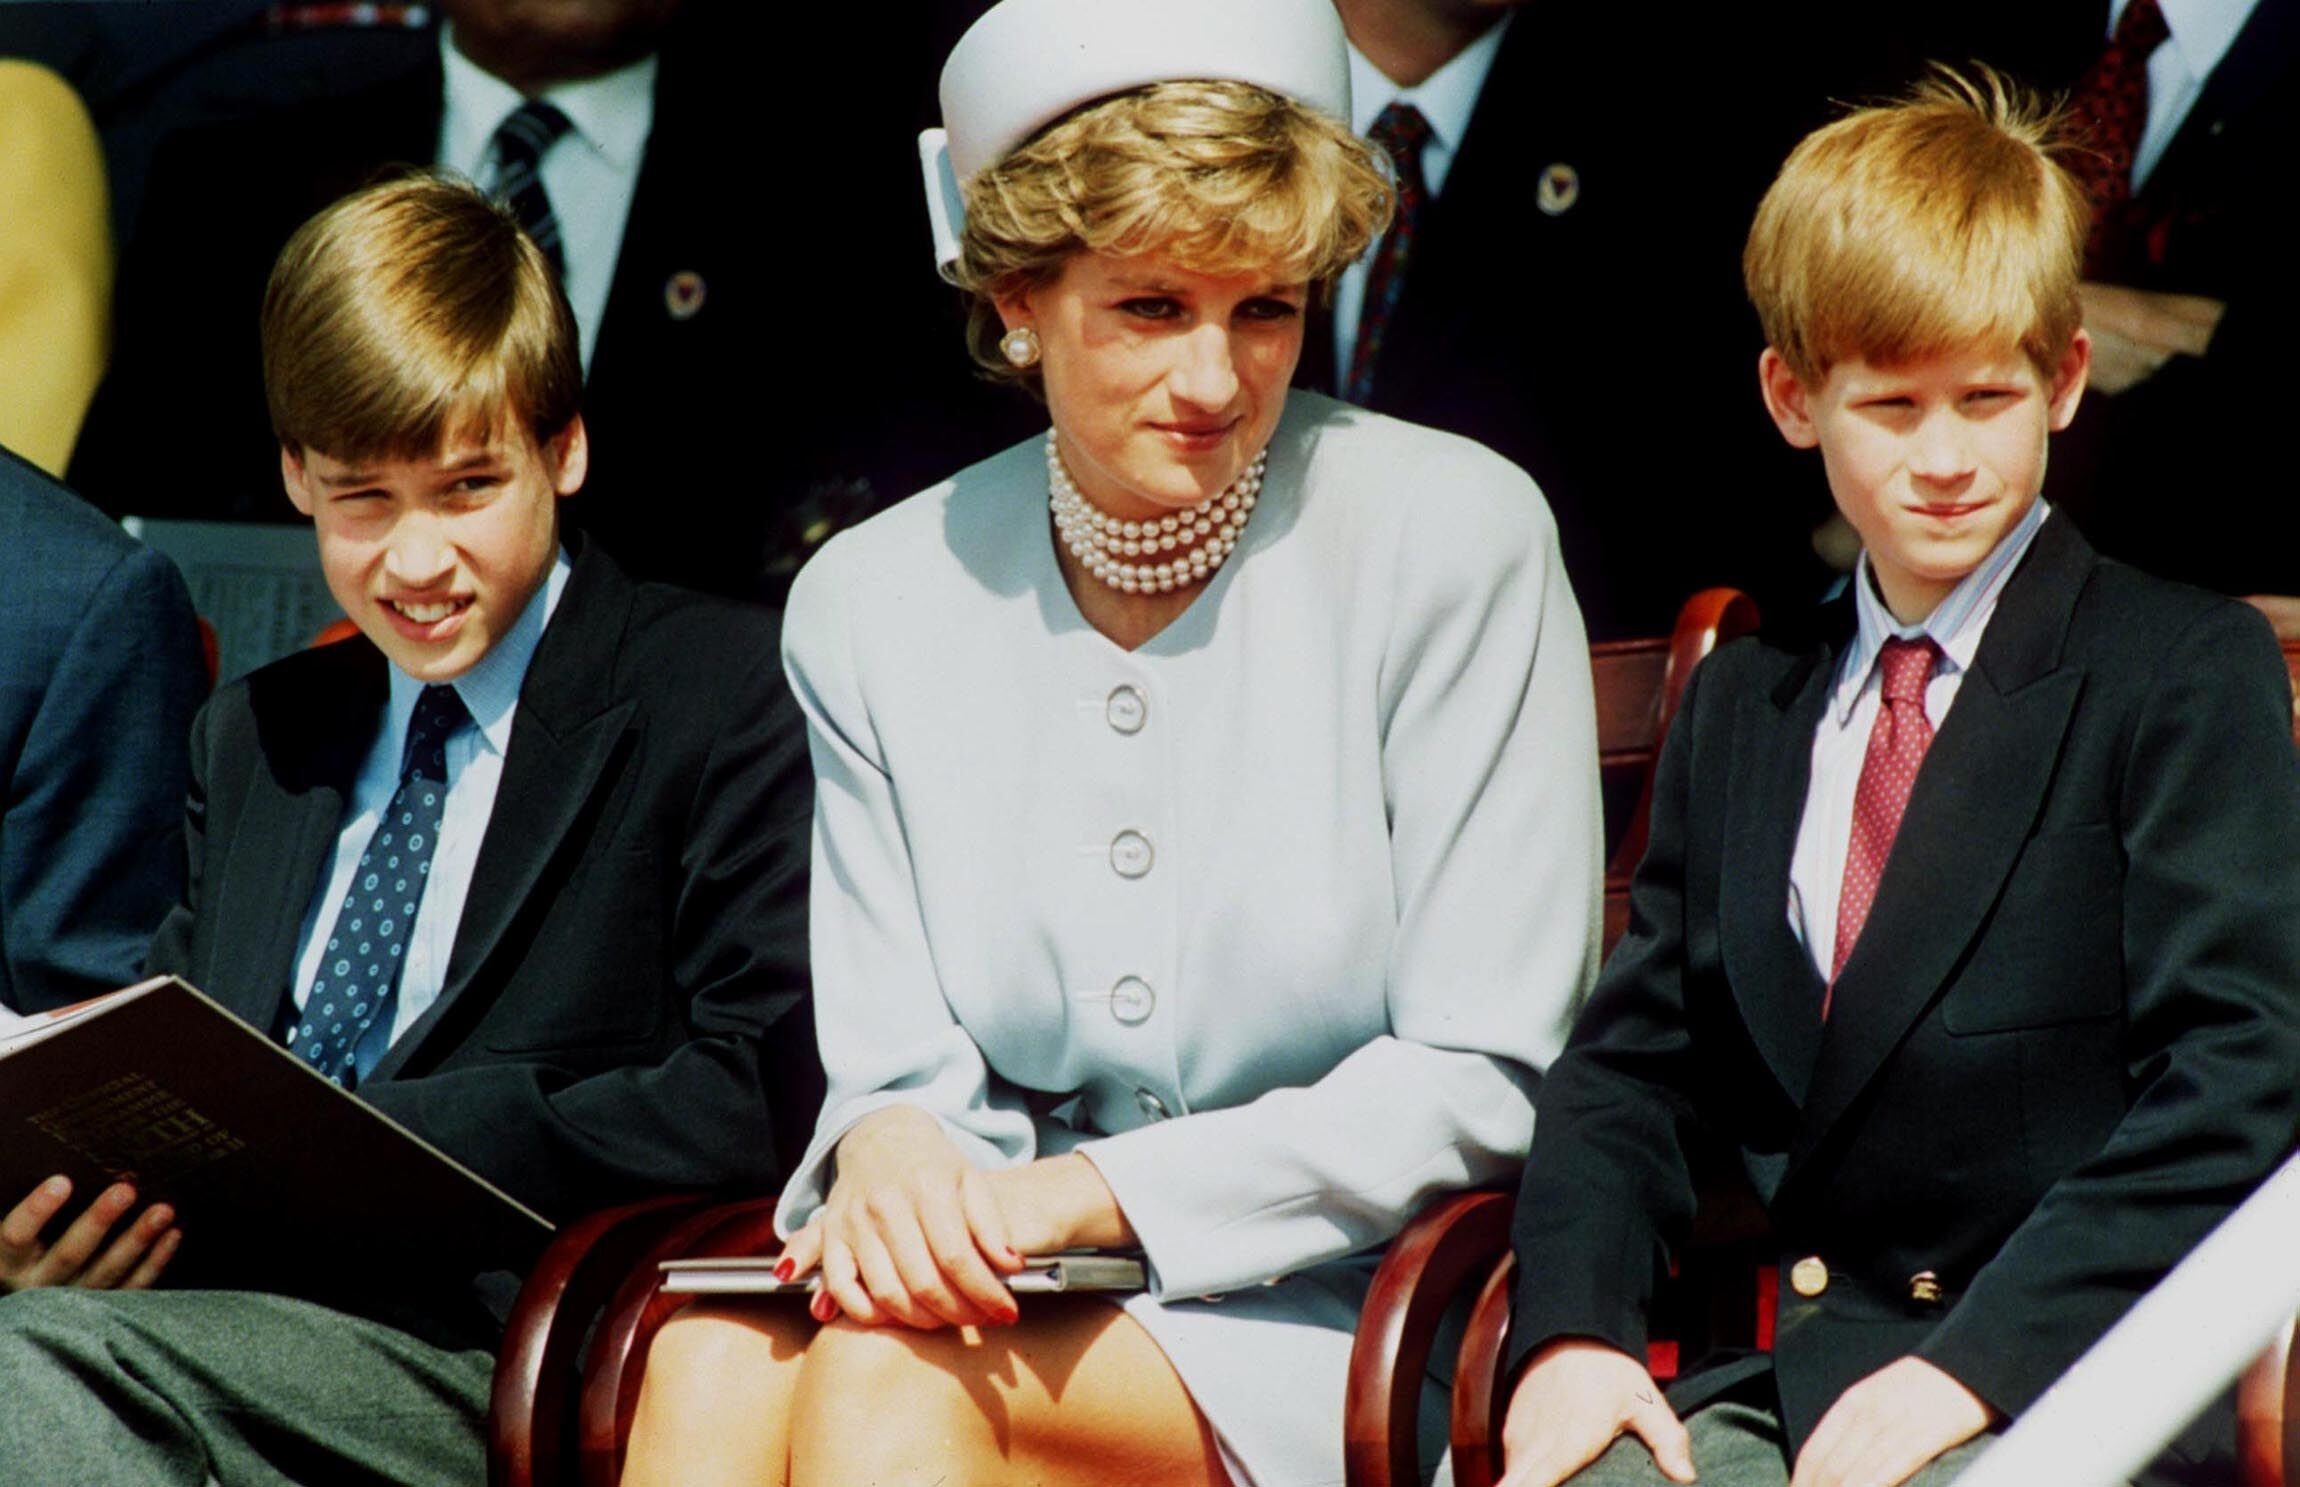 Diana, Princess of Wales with her sons Prince William and Prince Harry at the Heads of State VE Remembrance Service in Hyde Park on May 7, 1995. | Photo: Getty Images